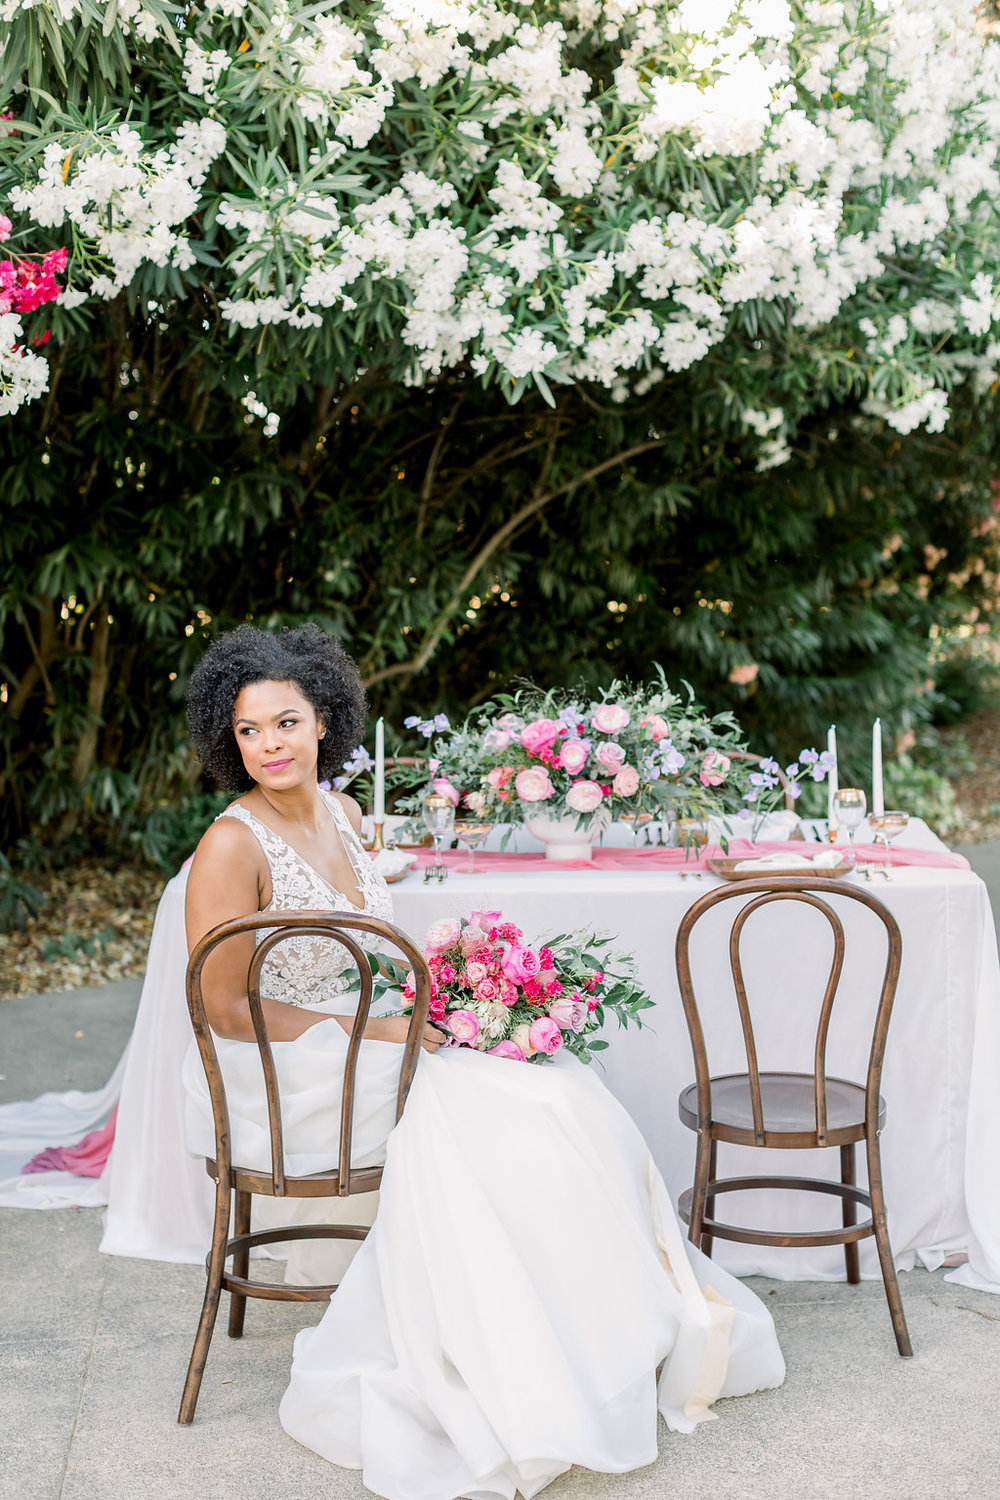 Wedding tablescape for pink and white wedding themes